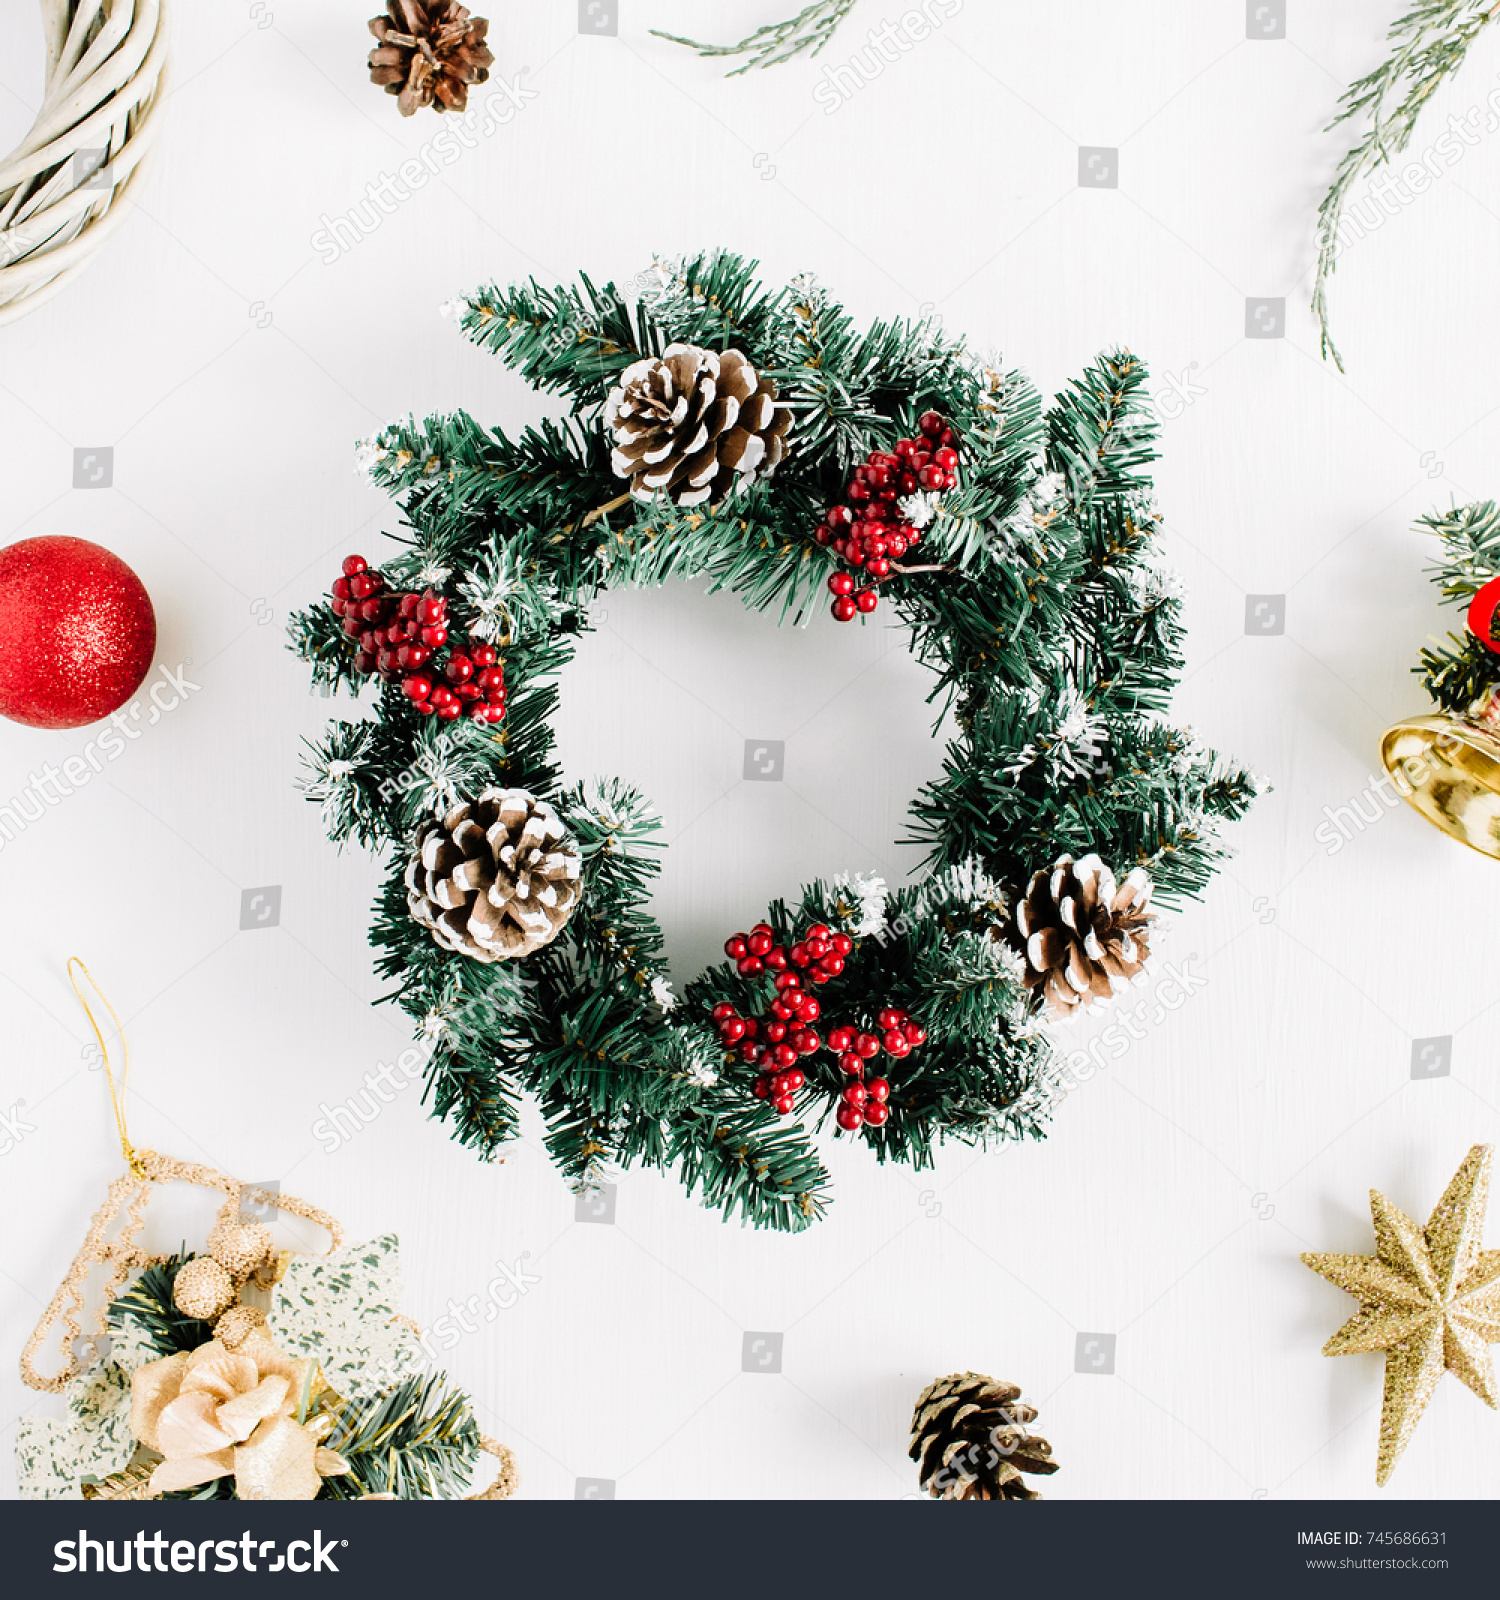 Christmas Composition Holiday Wreath Frame On Stock Photo (Royalty ...